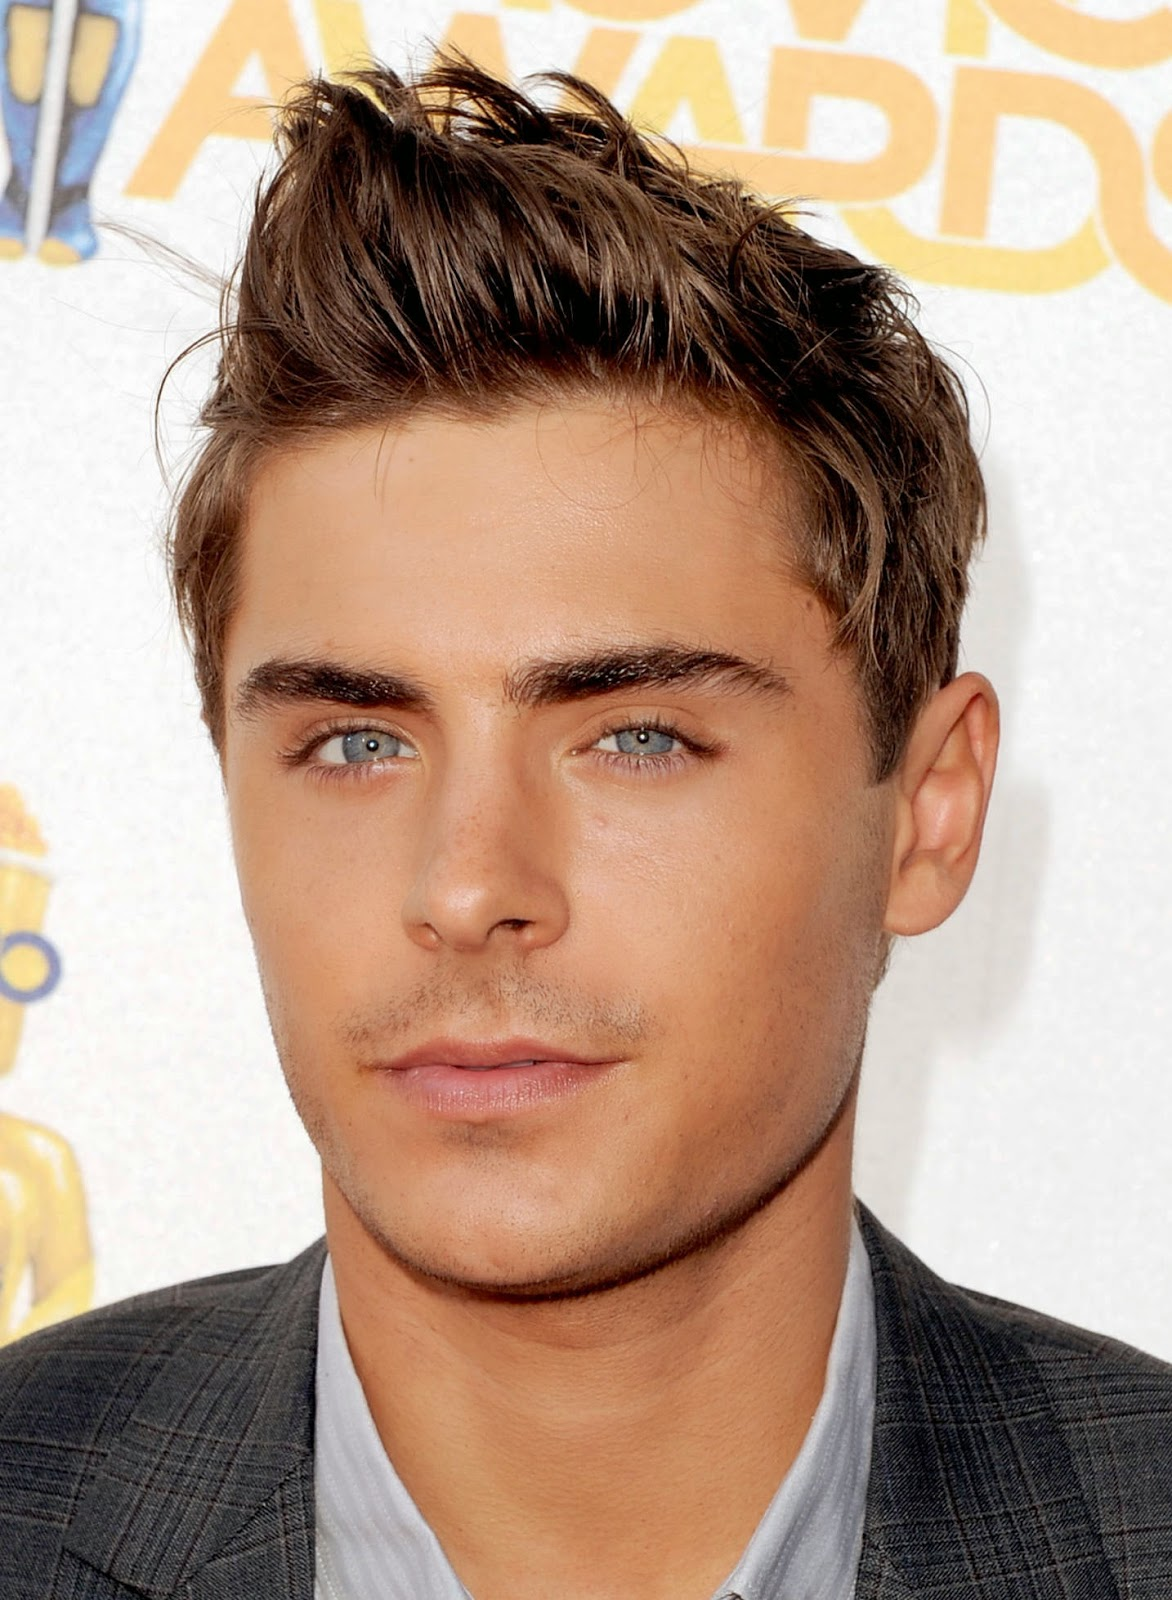 Zac Efron Hairstyles and Haircuts